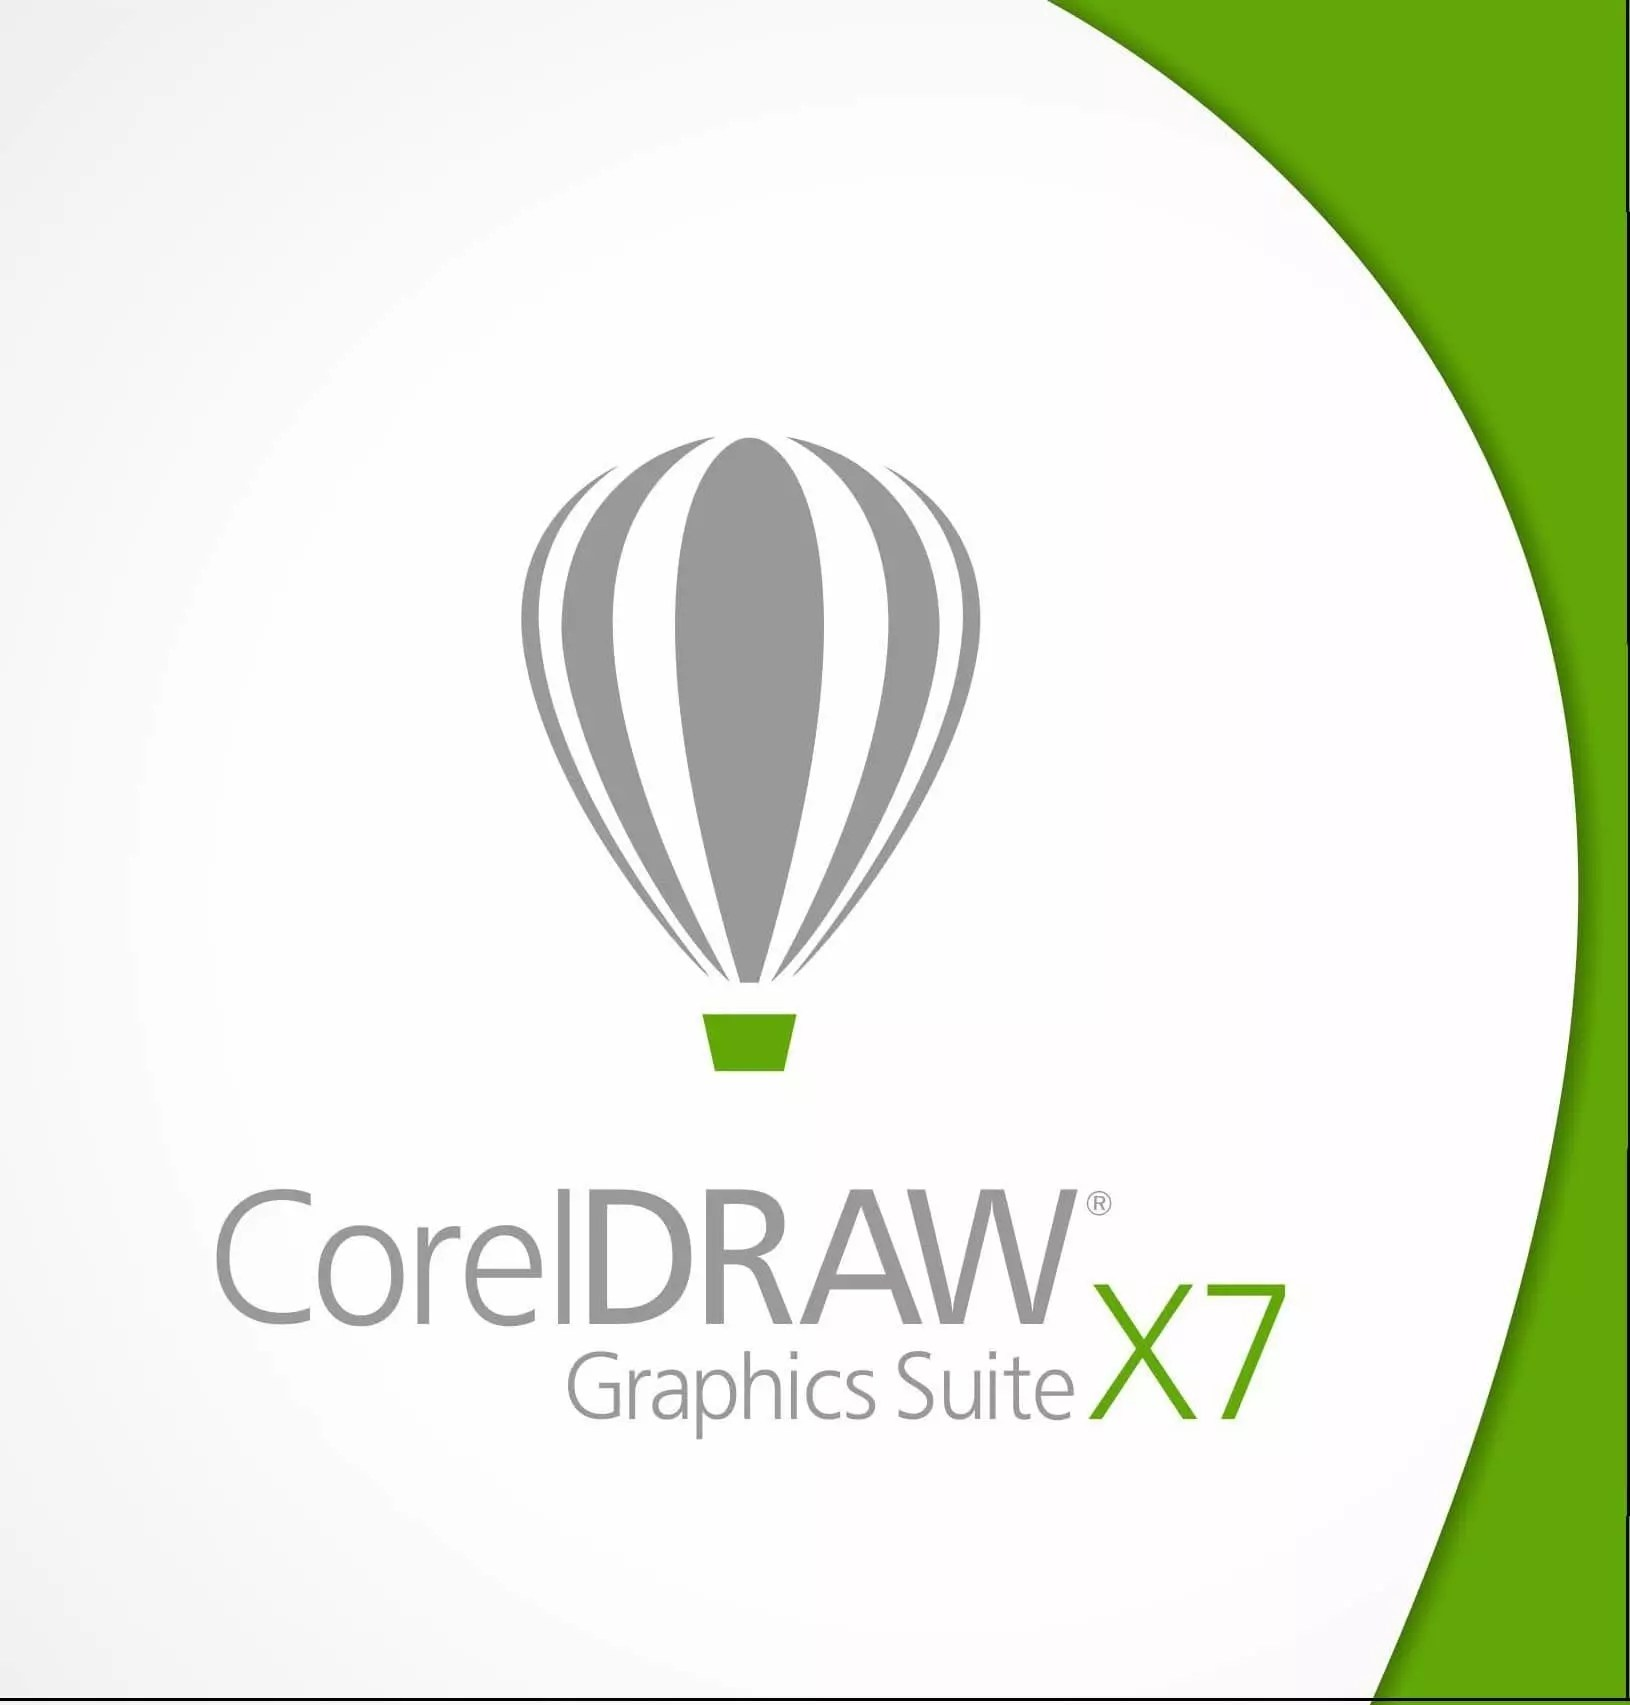 Corel Draw X7 7.4 PORTABLE - Windows 10